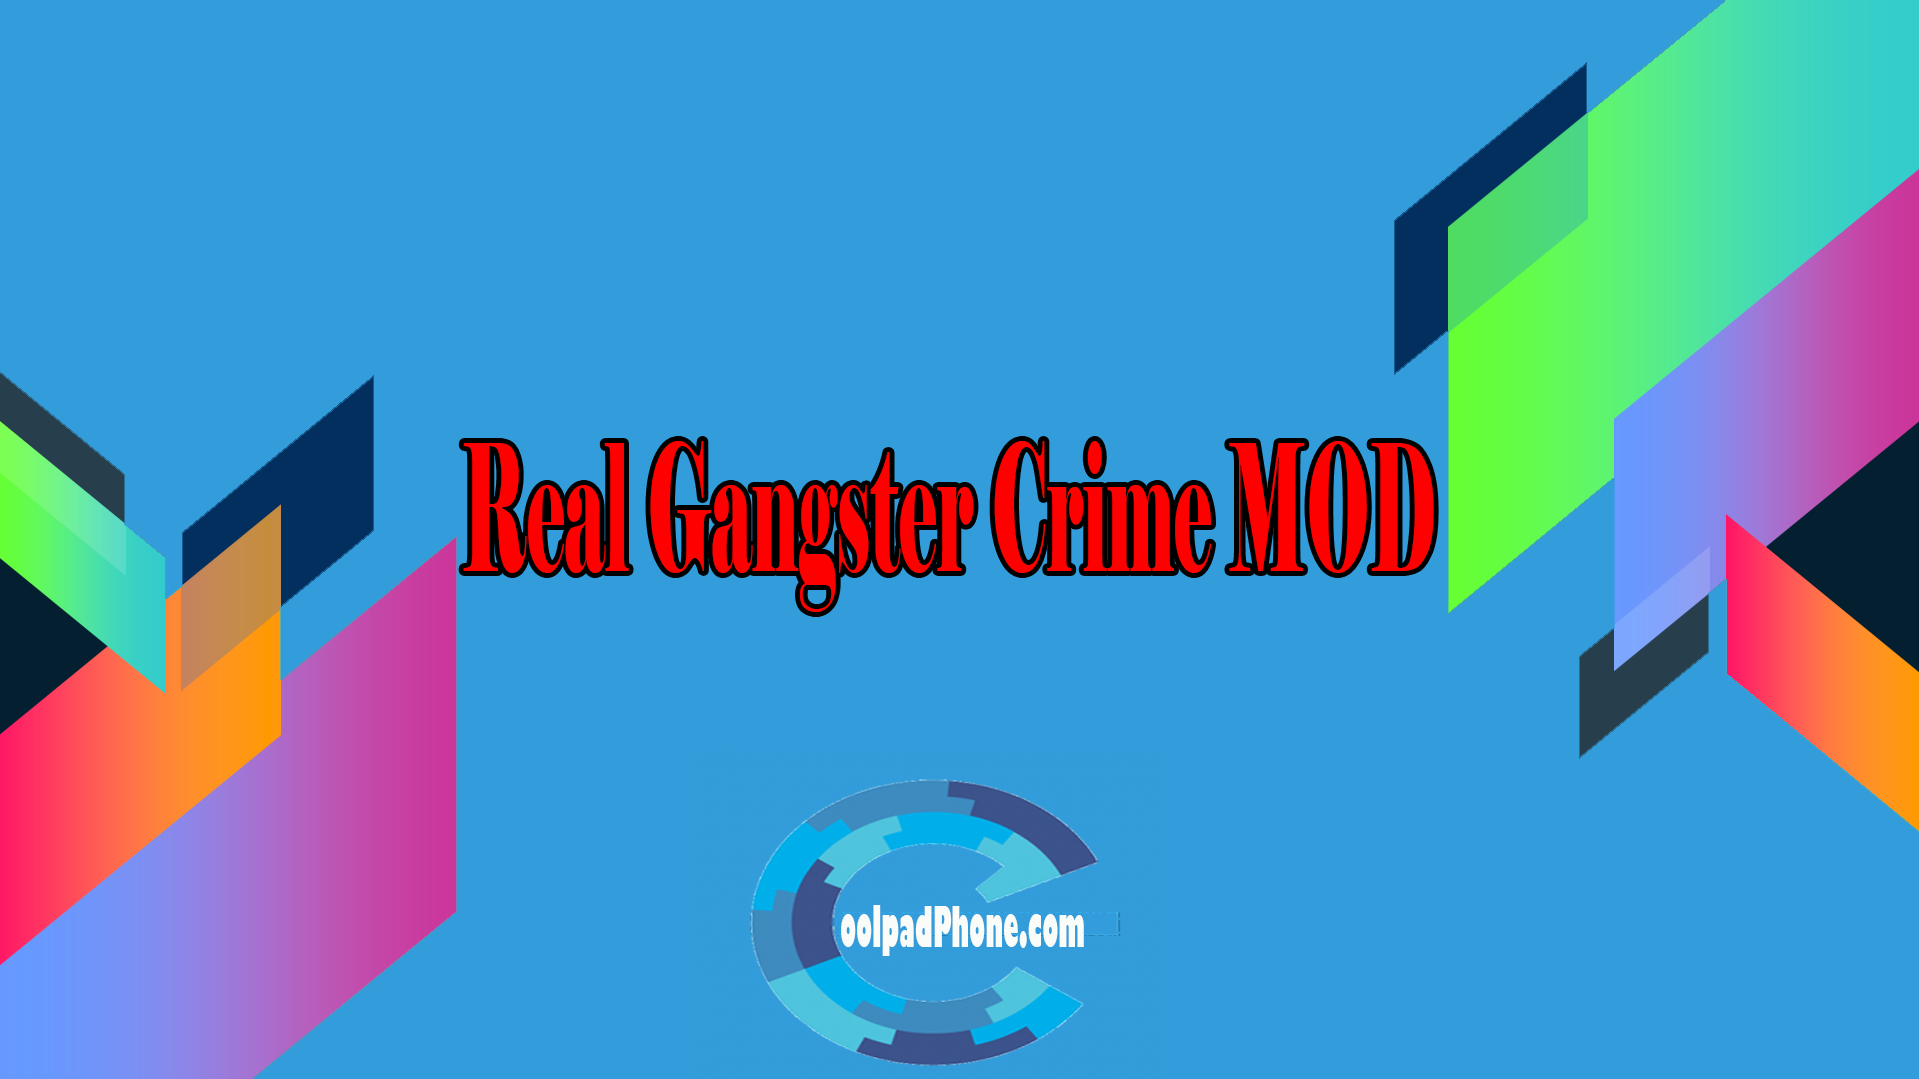 Real Gangster Crime MOD